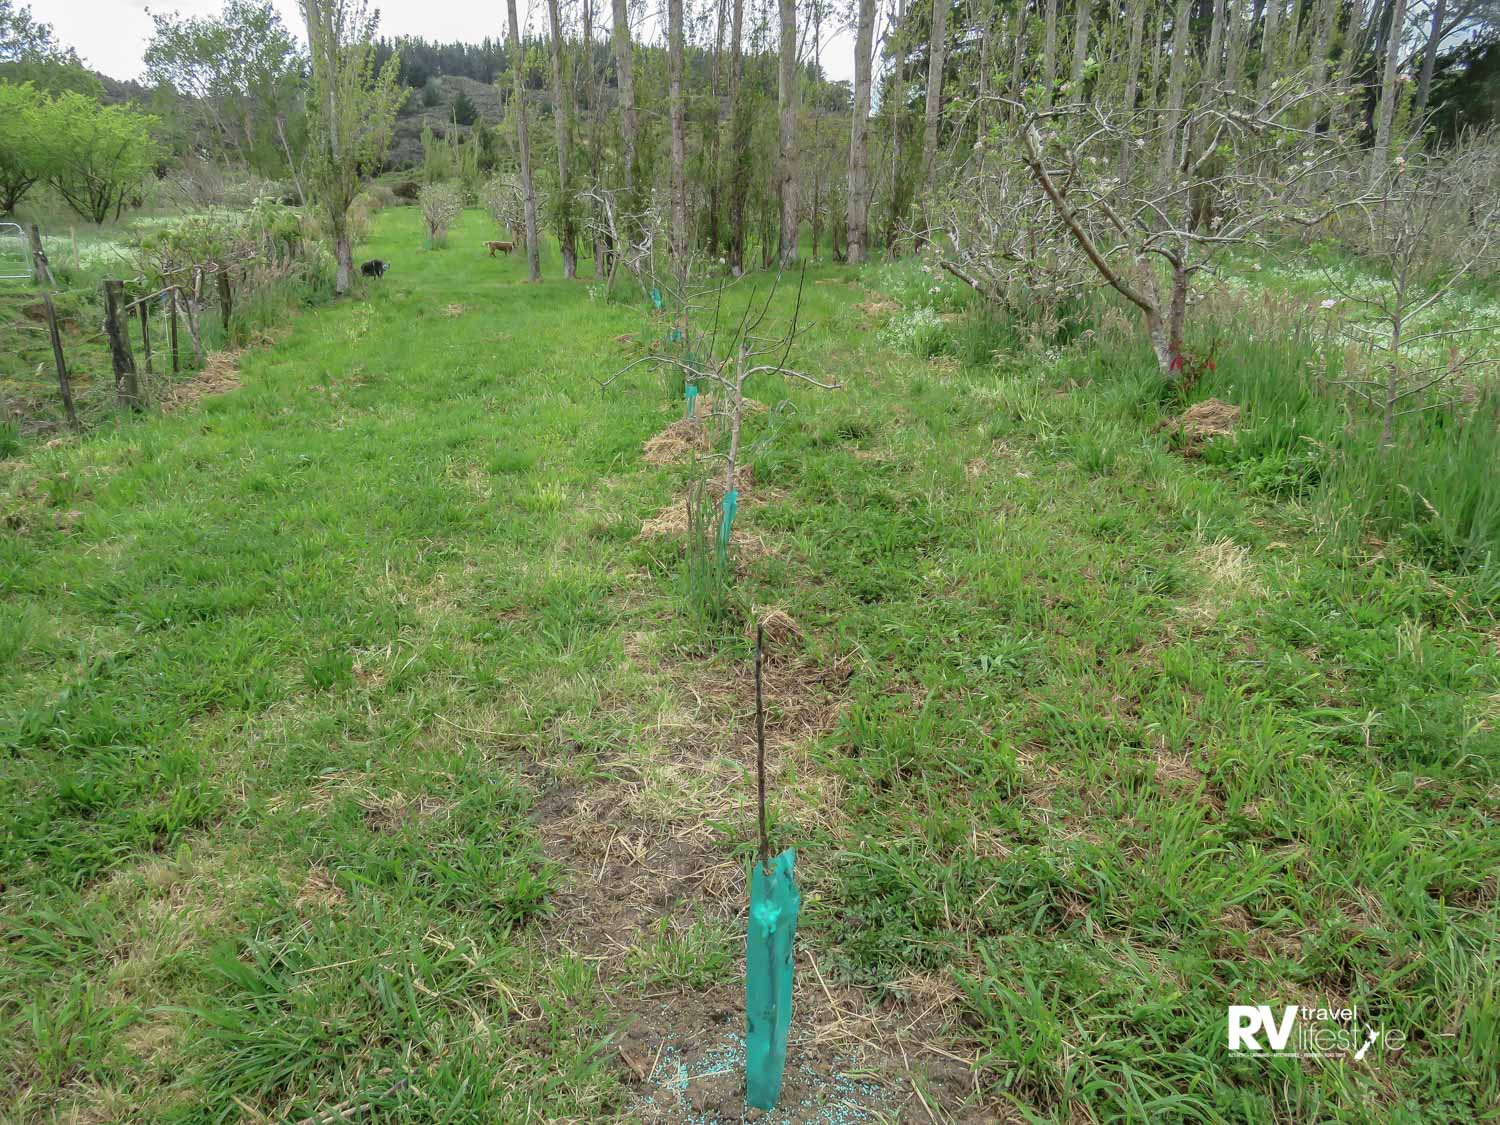 Green sleeves on a row of replacement apple trees – wild pigs damaged the originals